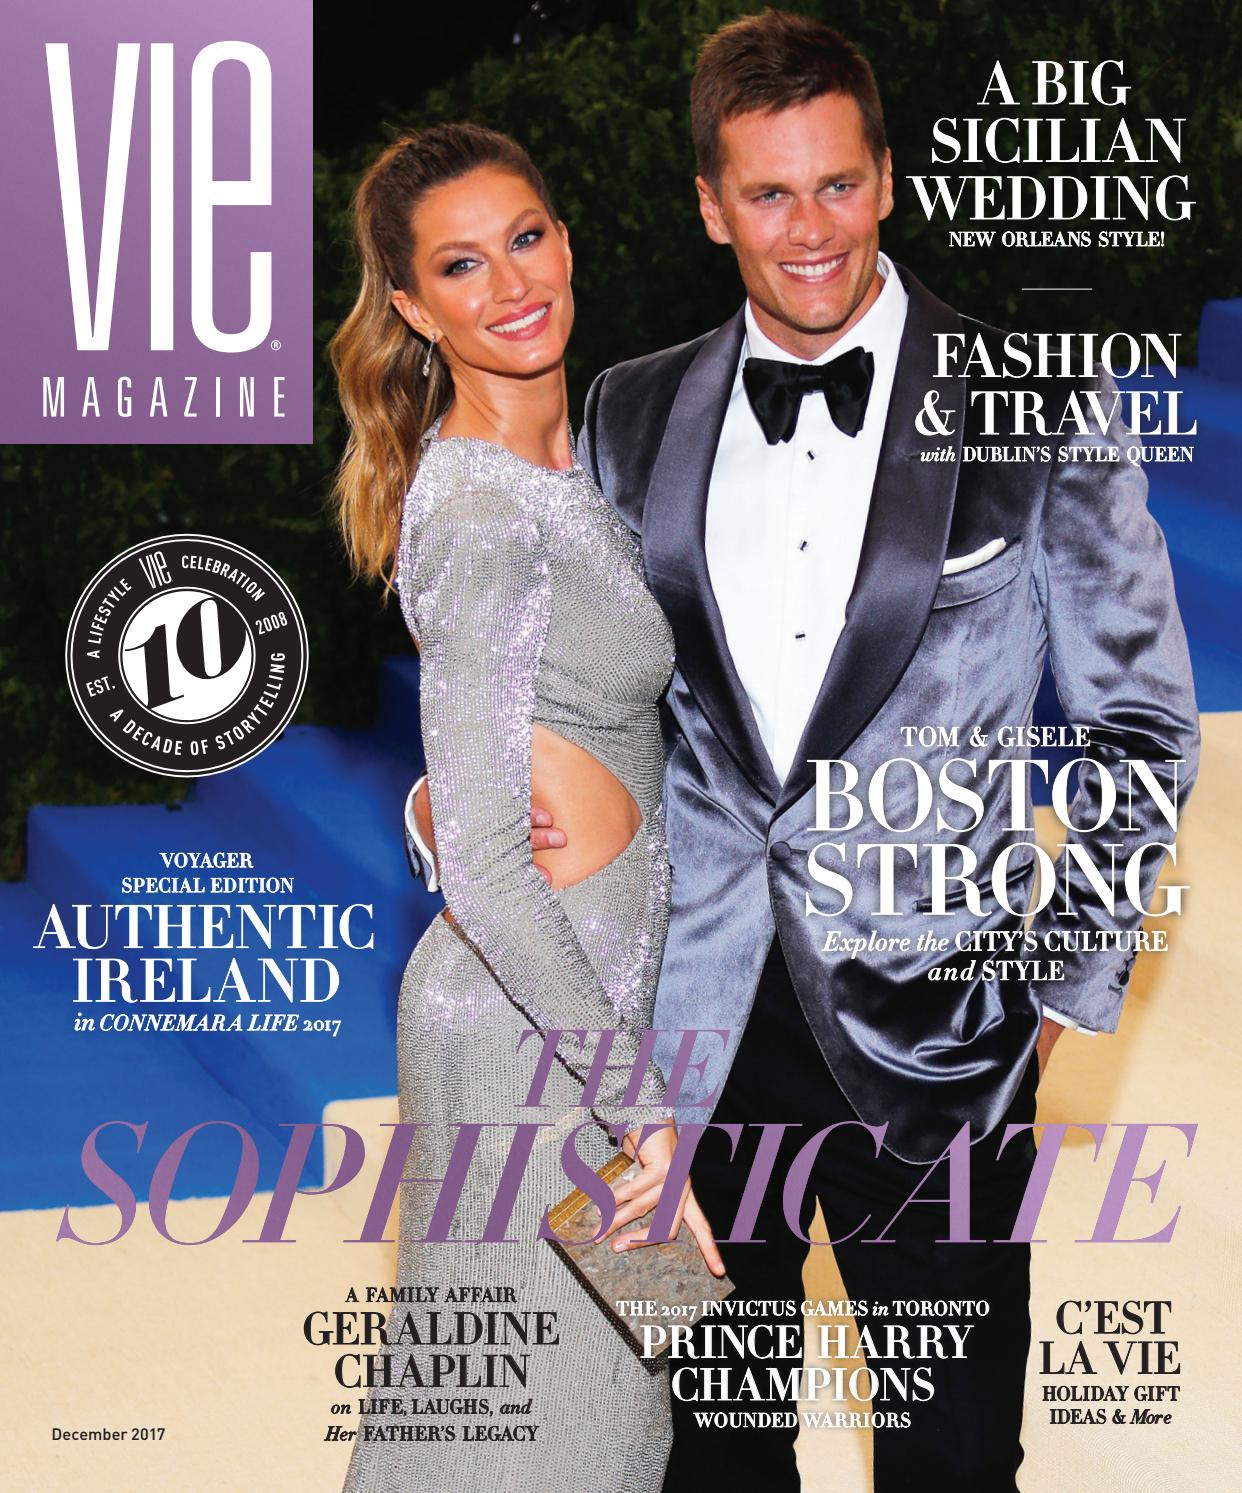 VIE Magazine December 2017 by  the idea boutique ® - issuu bc45a03783c50